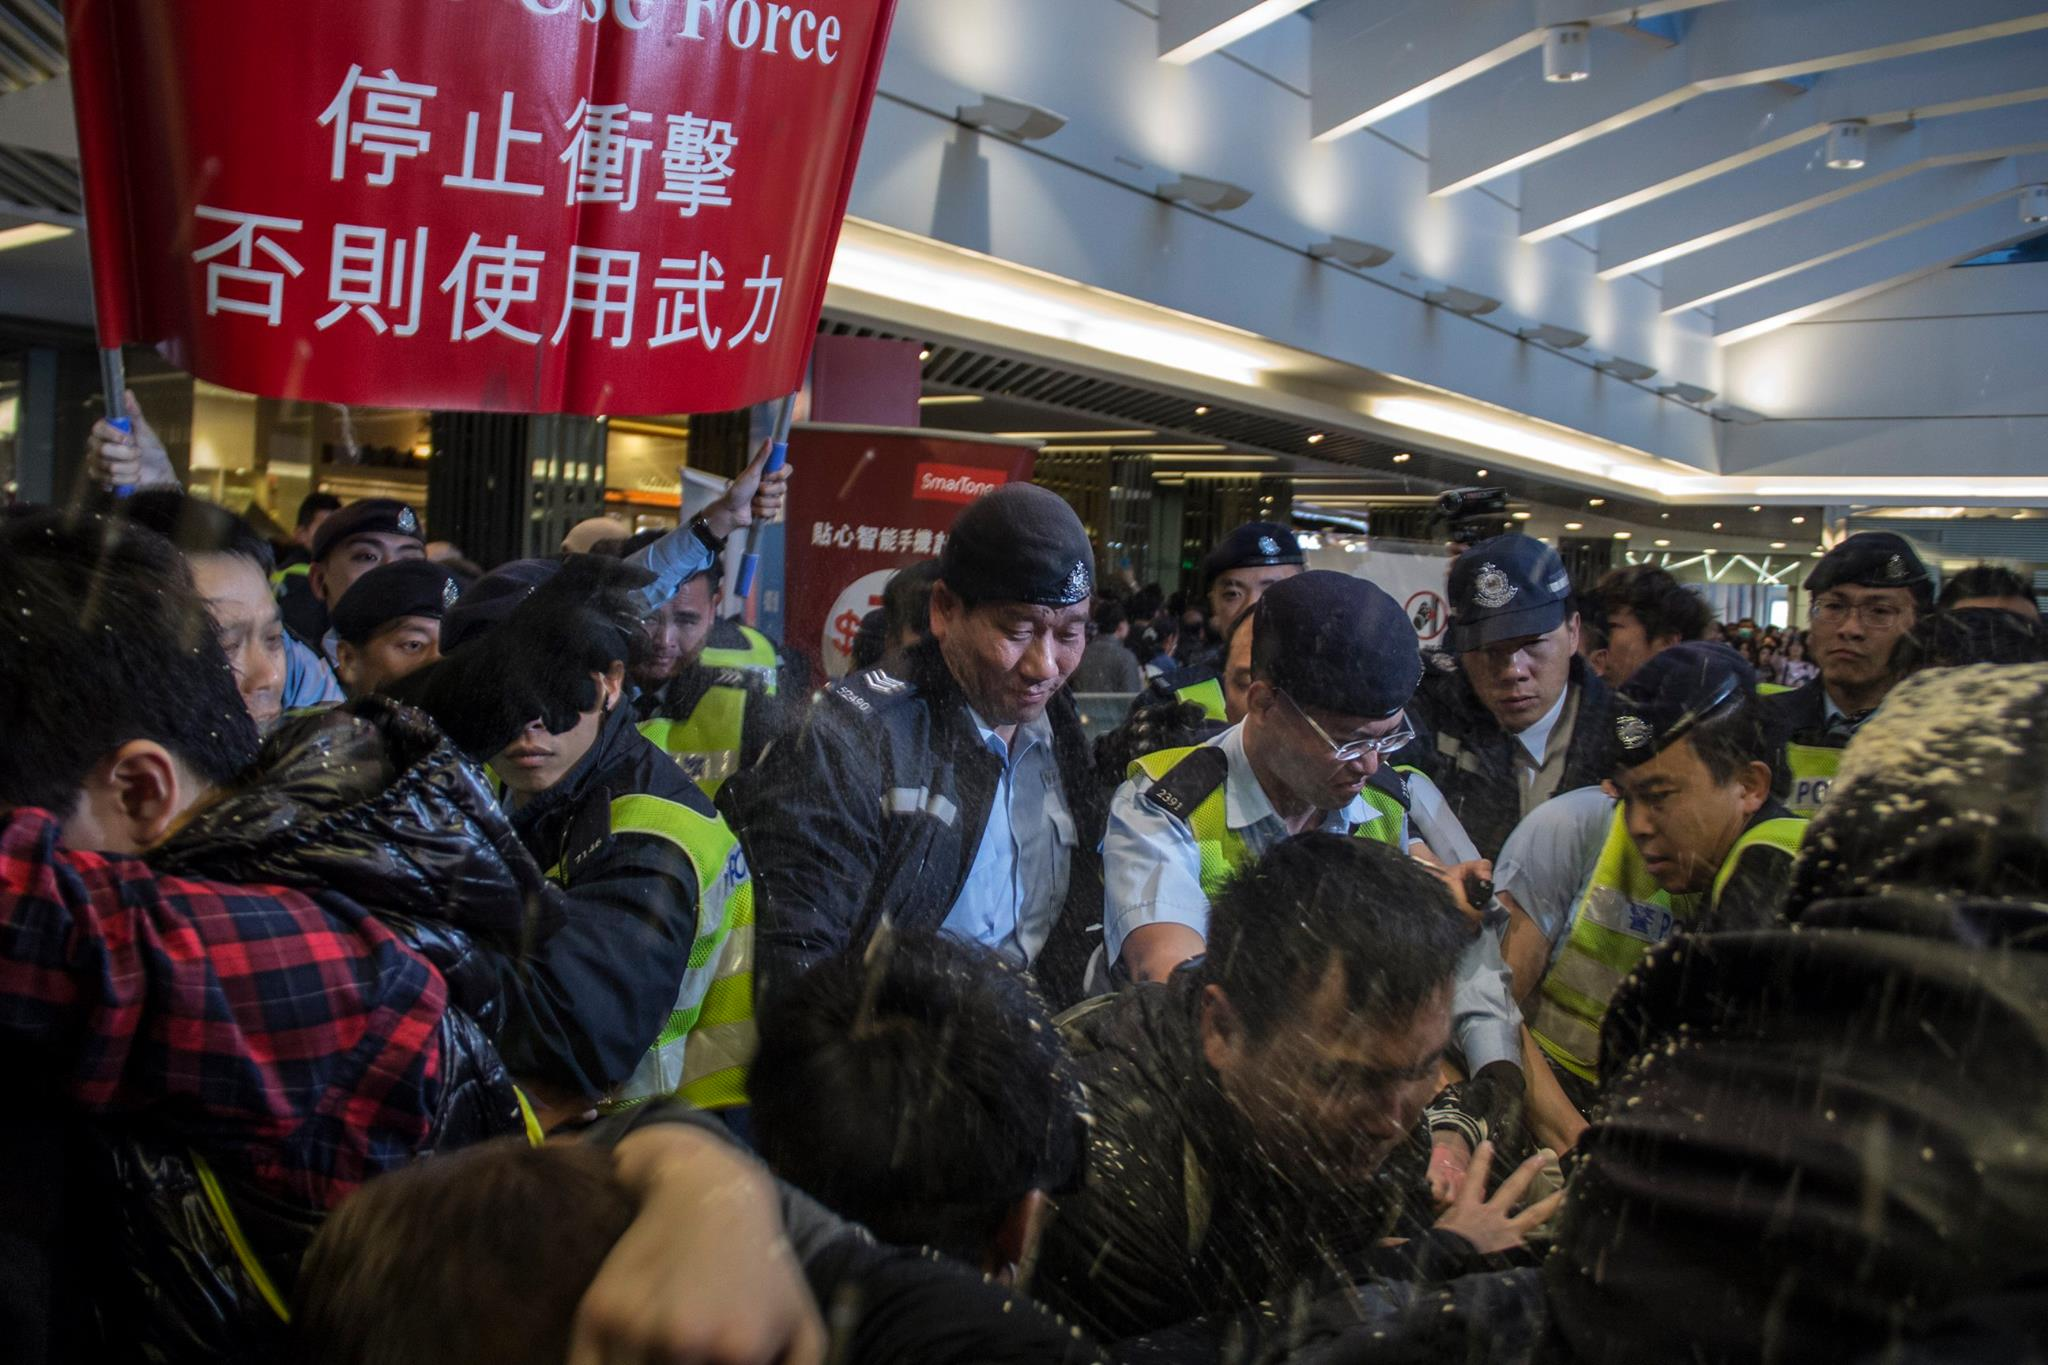 Pepper spraying protesters fighting against parallel traders overwhelming Hong Kong.